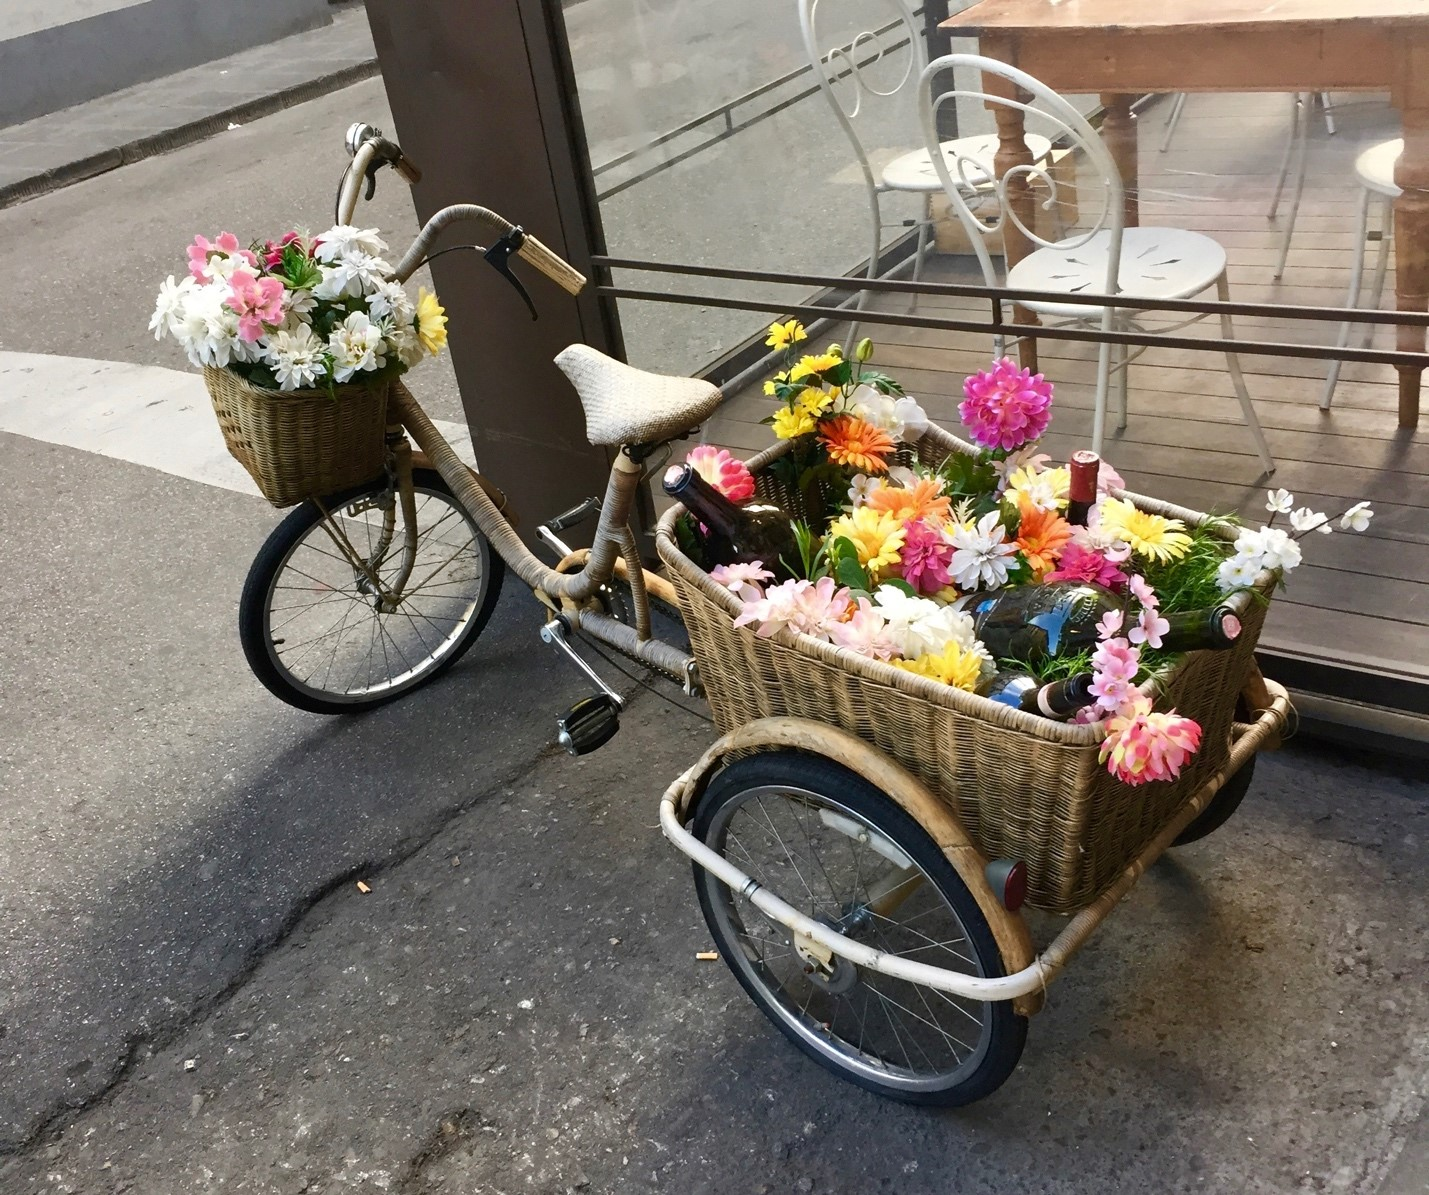 CAPAStudyAbroad_Florence_Spring2015_From_Emily_Kearns_-_flower_bike-1.jpg